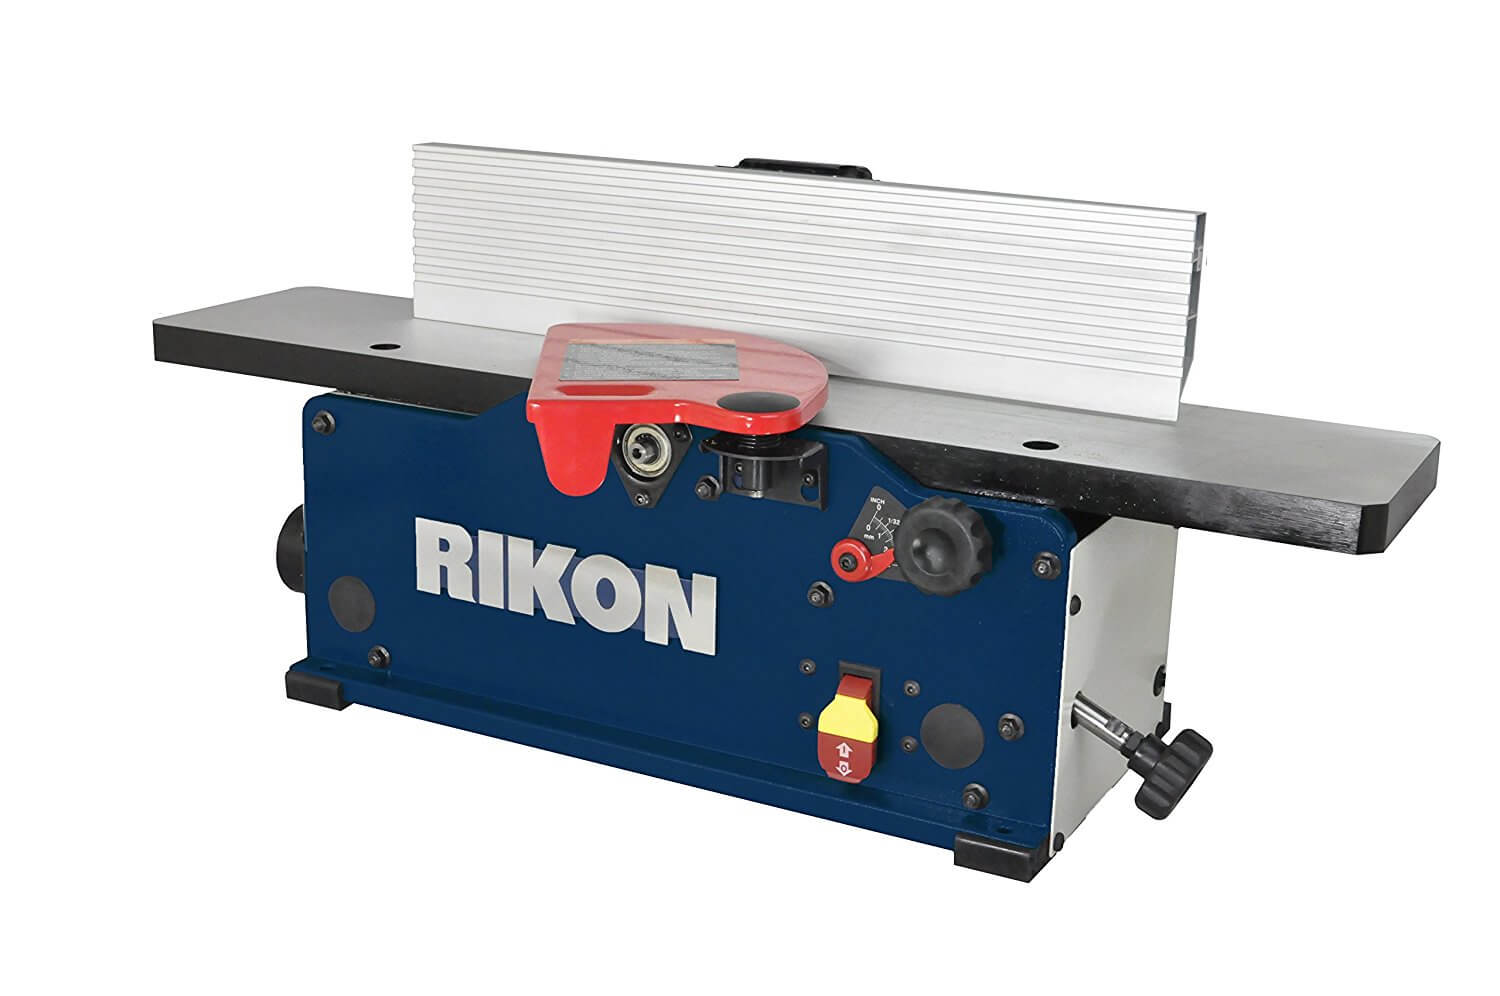 6 Inch Jointer Reviews